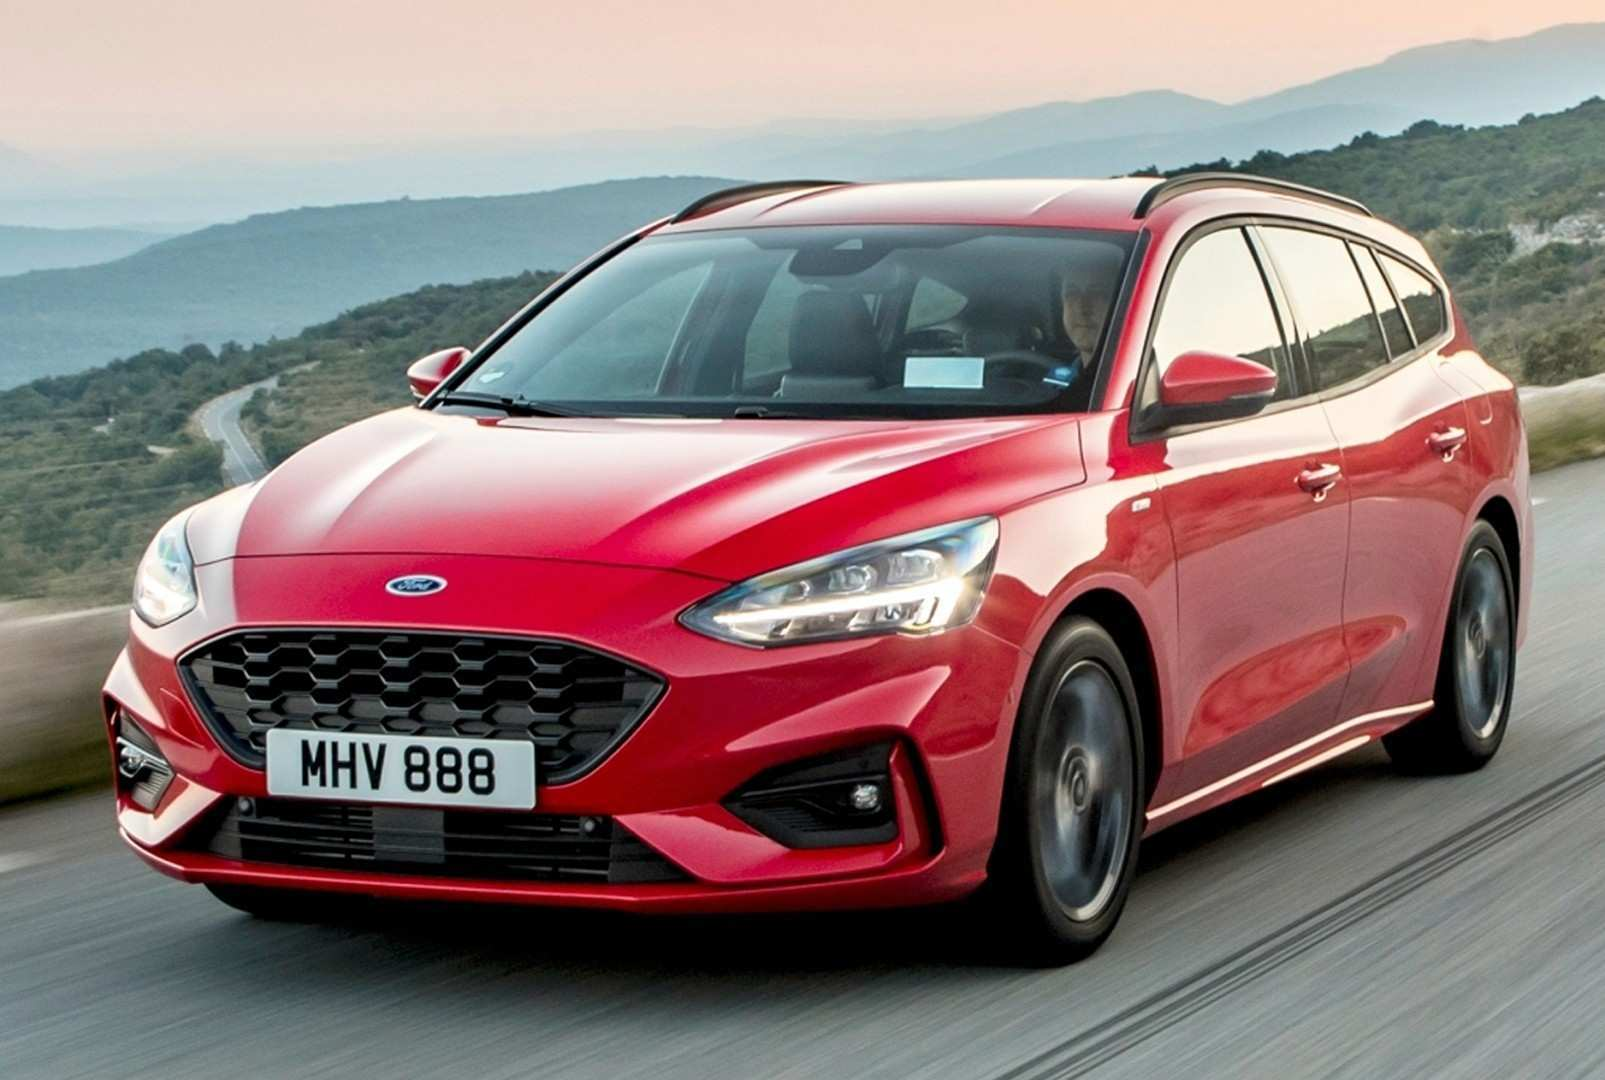 57 Best Review 2019 Ford Focus St Line First Drive with 2019 Ford Focus St Line